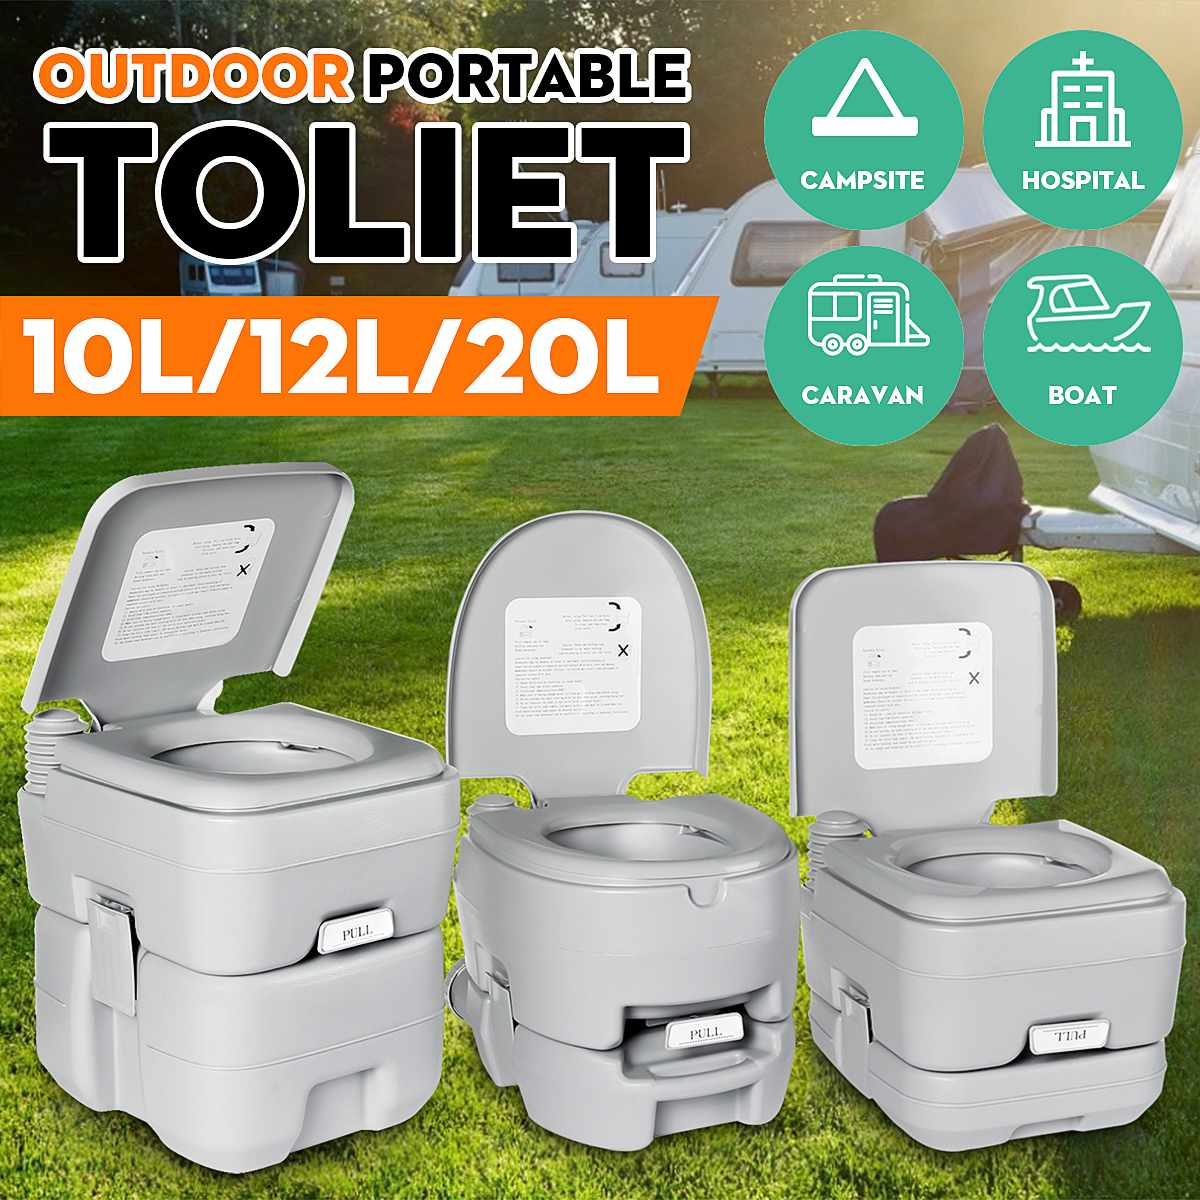 10L/12L/20L Portable Toilet Home Travel Outdoor Camping Commode Potty Indoor For Elderly For Boat Caravan Motor-home Campsite